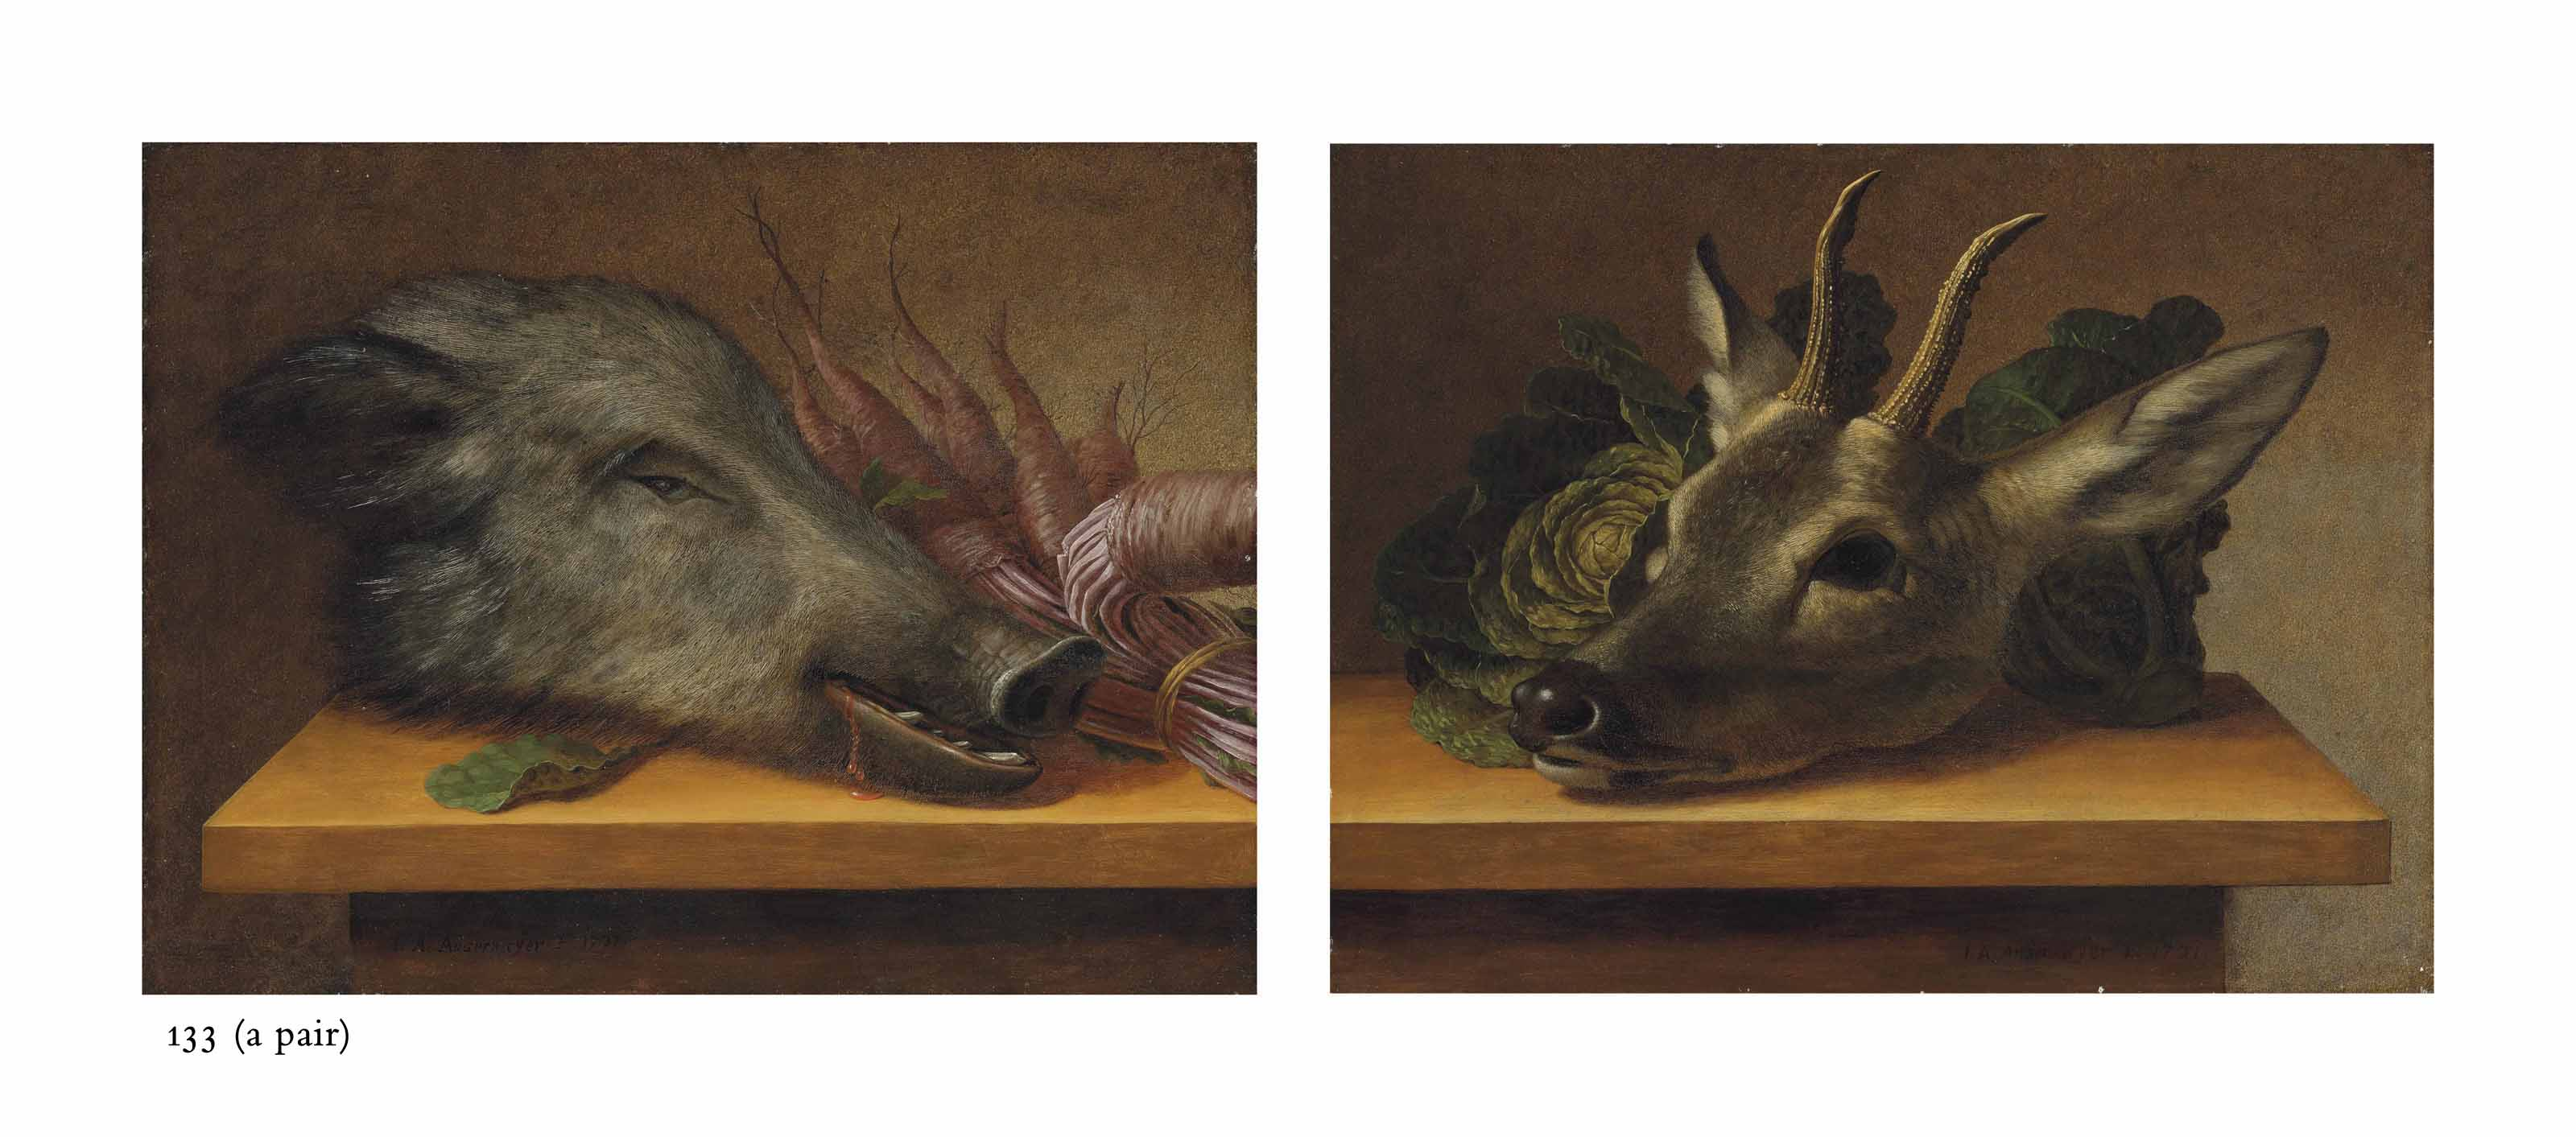 Head of a boar with a bundle of parsnips on a ledge; and Head of a deer with cabbage on a ledge